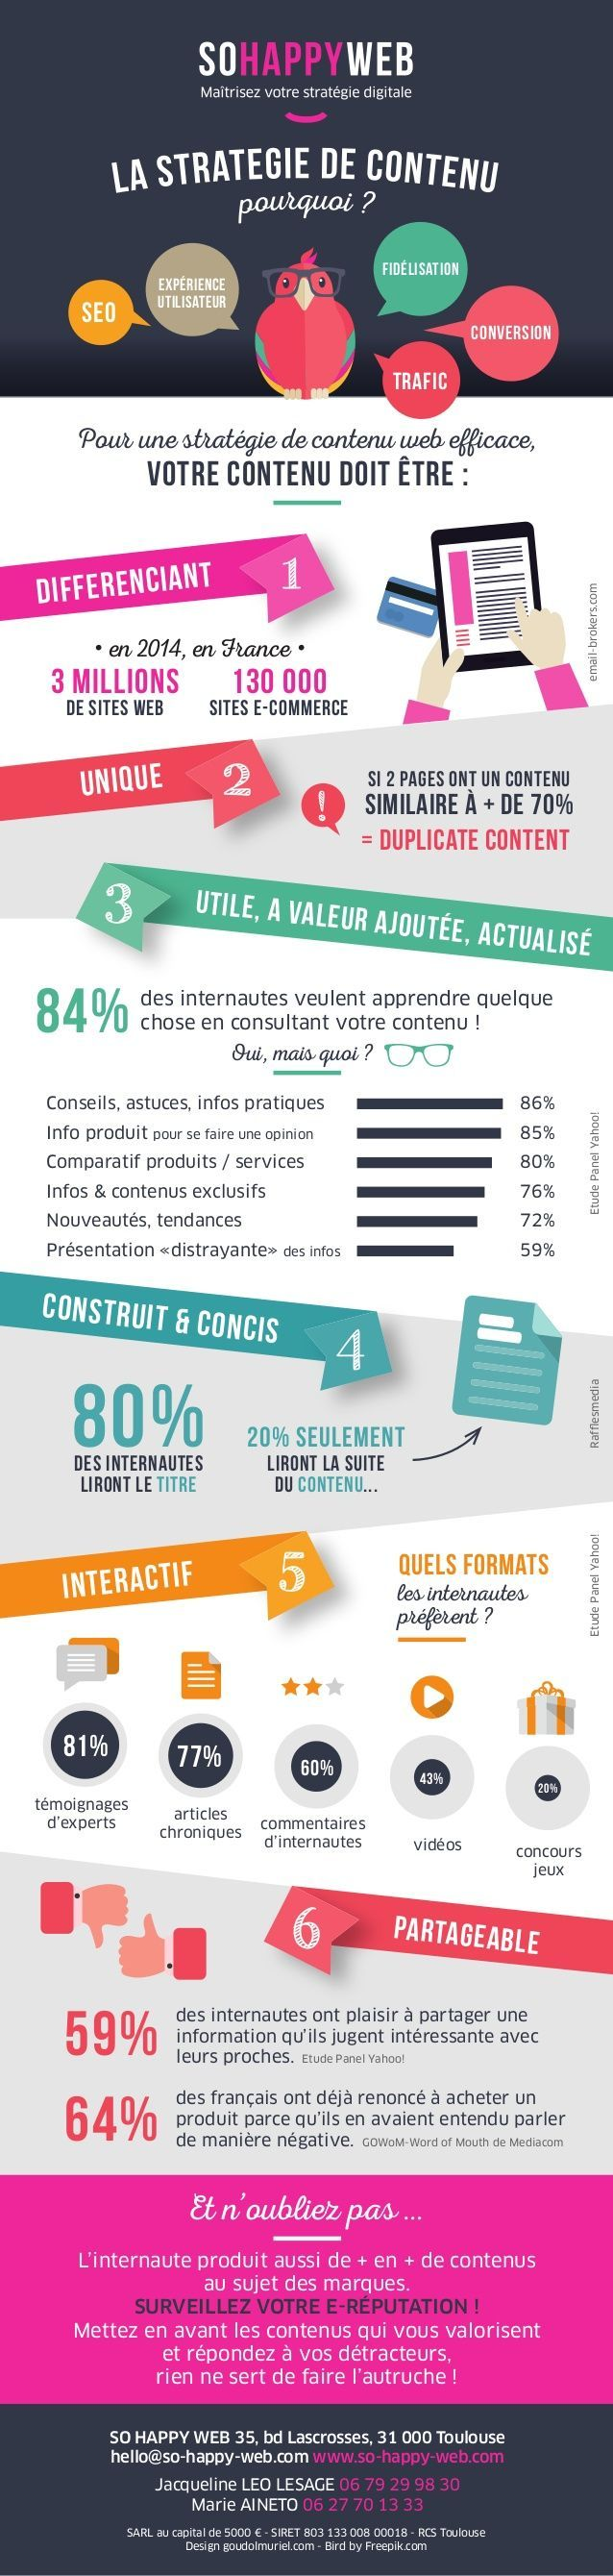 Infographie - Stratégie de contenu web - So Happy Web - Content strategy meet up 13 novembre 2014 fr.slideshare.net